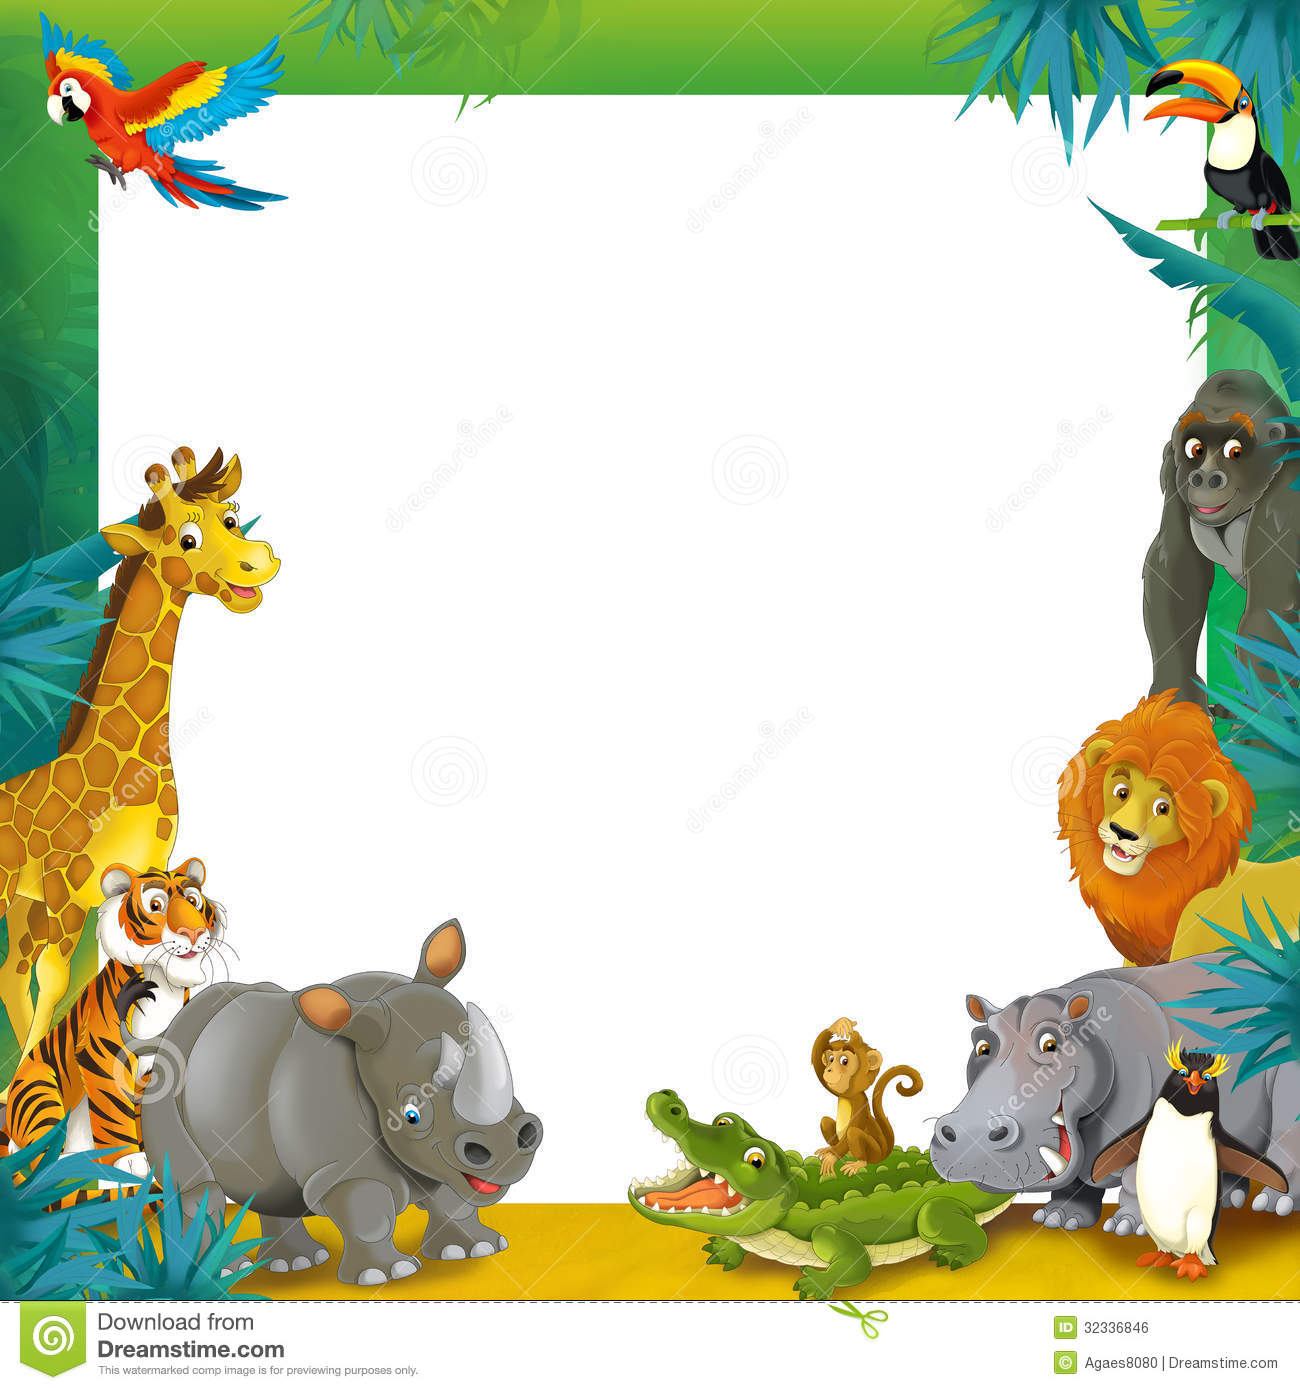 Cartoon Safari - Jungle - Frame Border Template ...